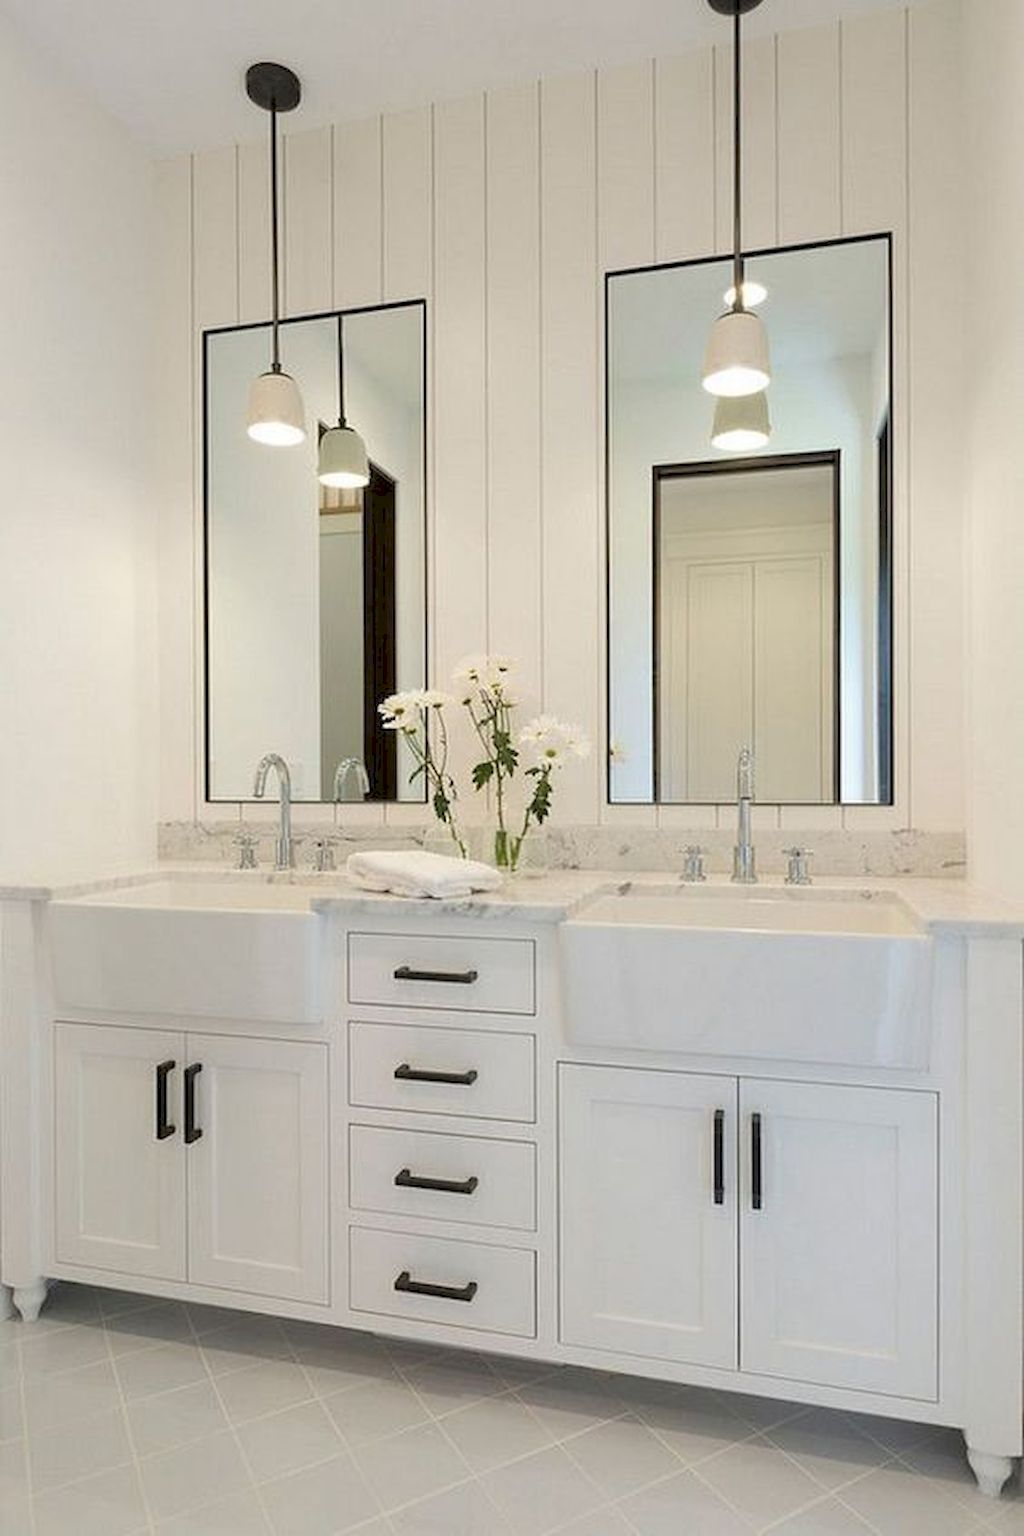 125 Brilliant Farmhouse Bathroom Vanity Remodel Ideas With Images